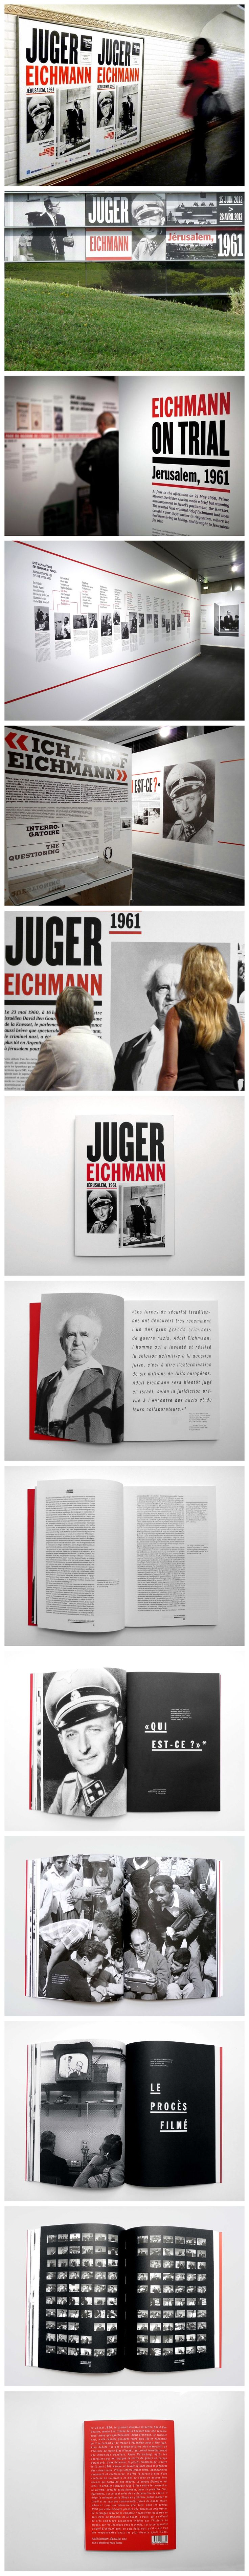 JUGER EICHMANN Book design, signage and poster of the exhibition at the Shoah Memorial, Paris. Graphic adaptation for the Oradour-sur-Glane Memorial. Conceived in collaboration with Doc Levin.  http://helenemarian.com/